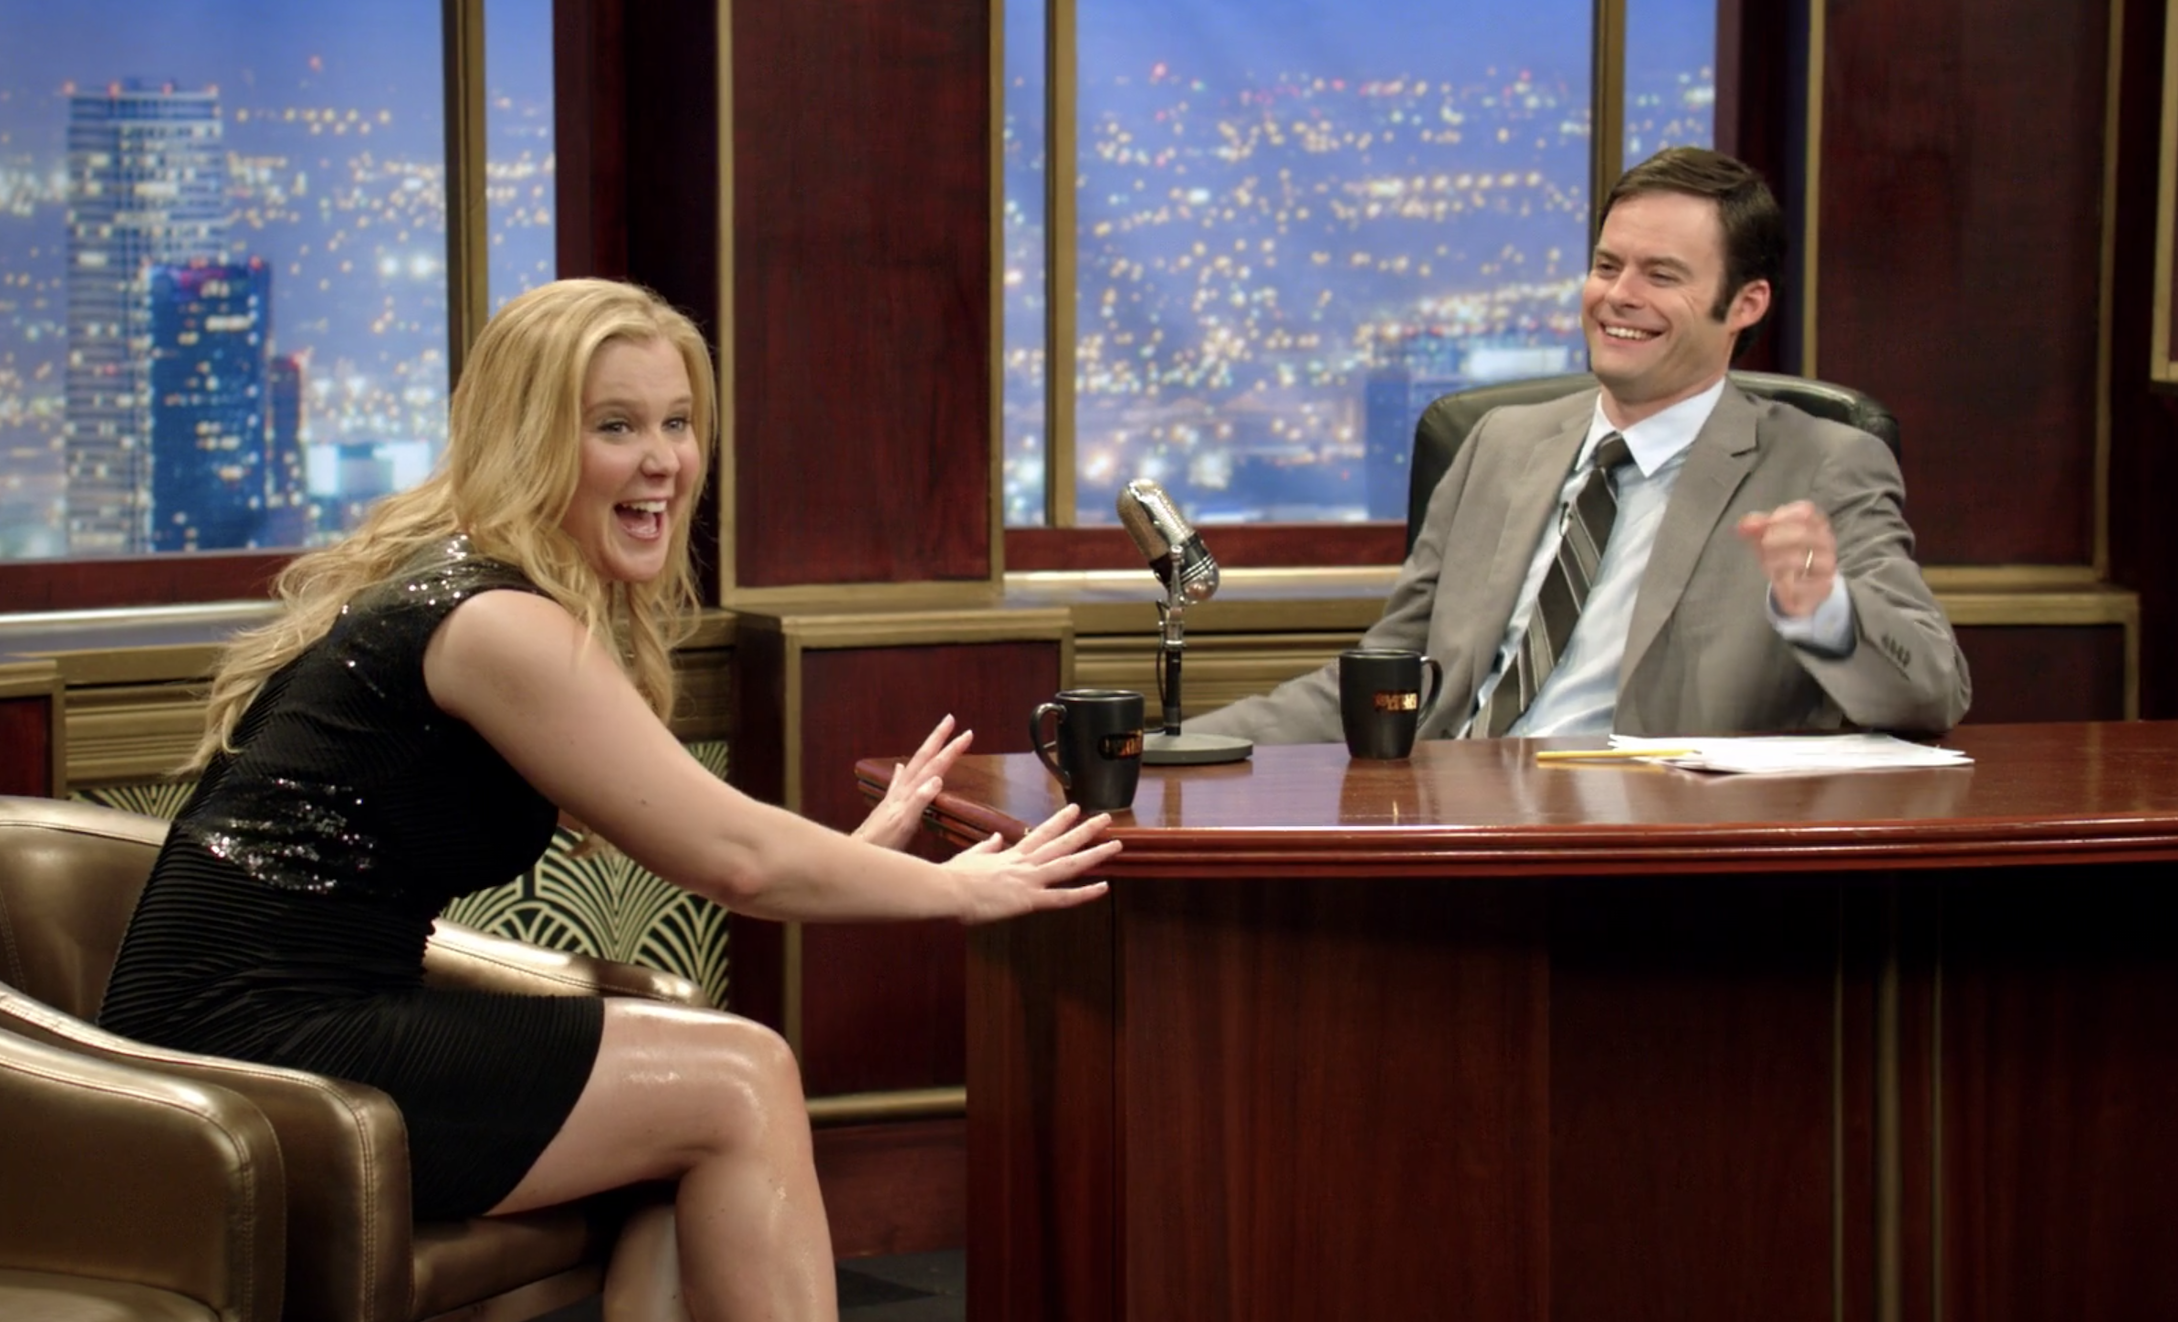 A still of Amy Schumer and Bill Hader in Inside Amy Schumer